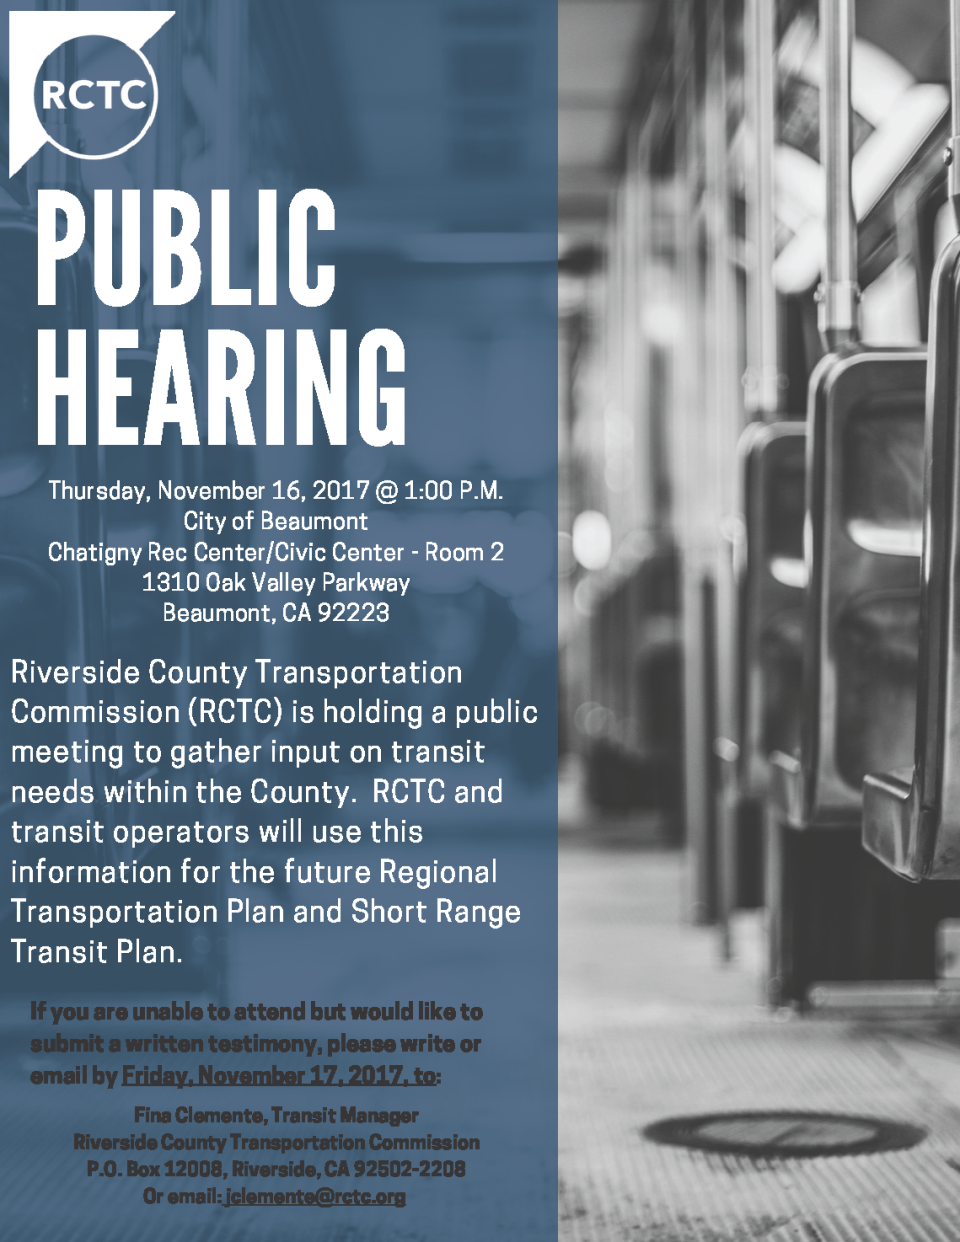 RCTC Public Hearing 11-16-17